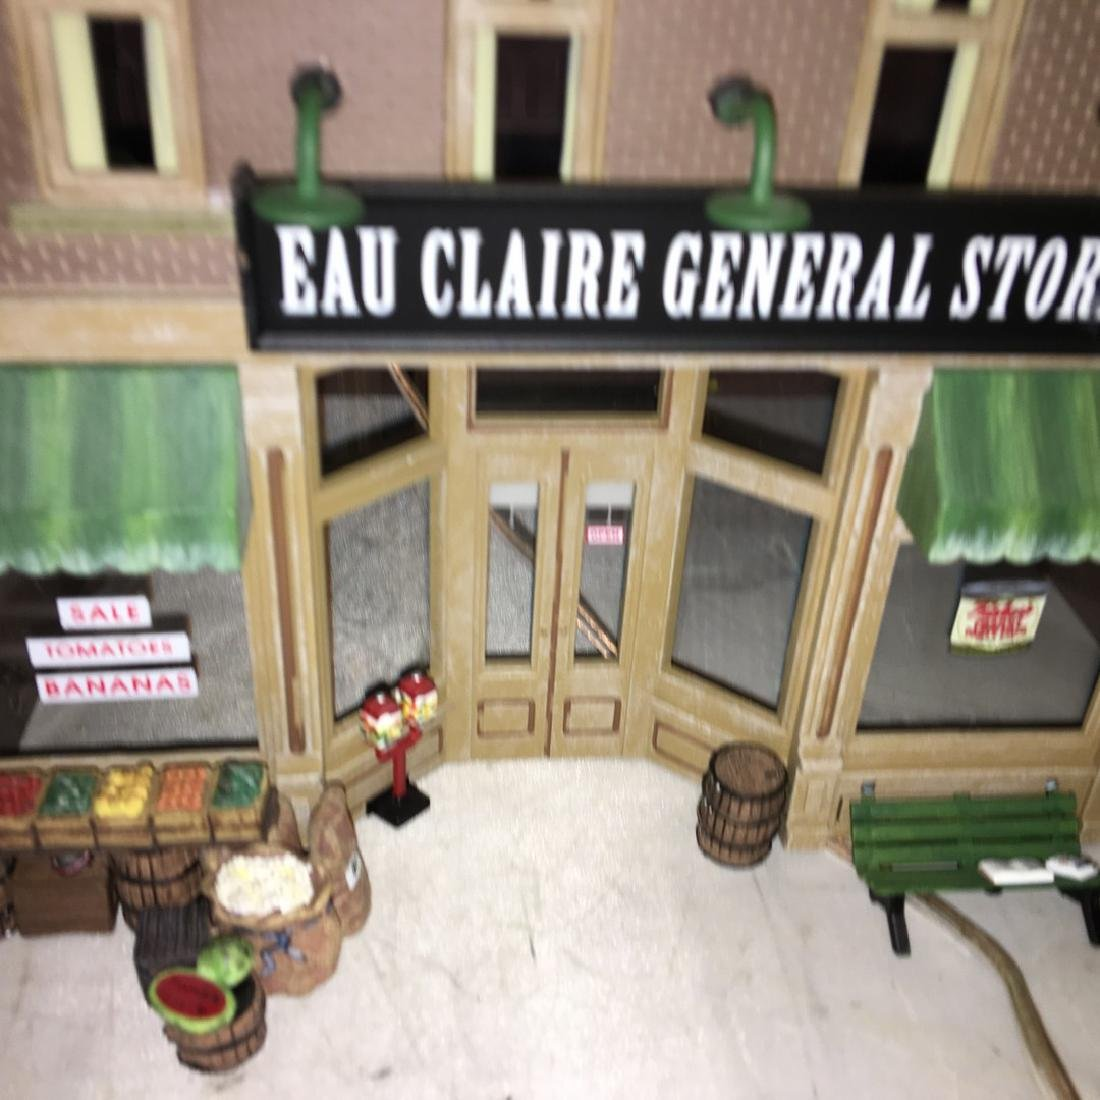 Menards Eau Claire O Gauge General Store - 2